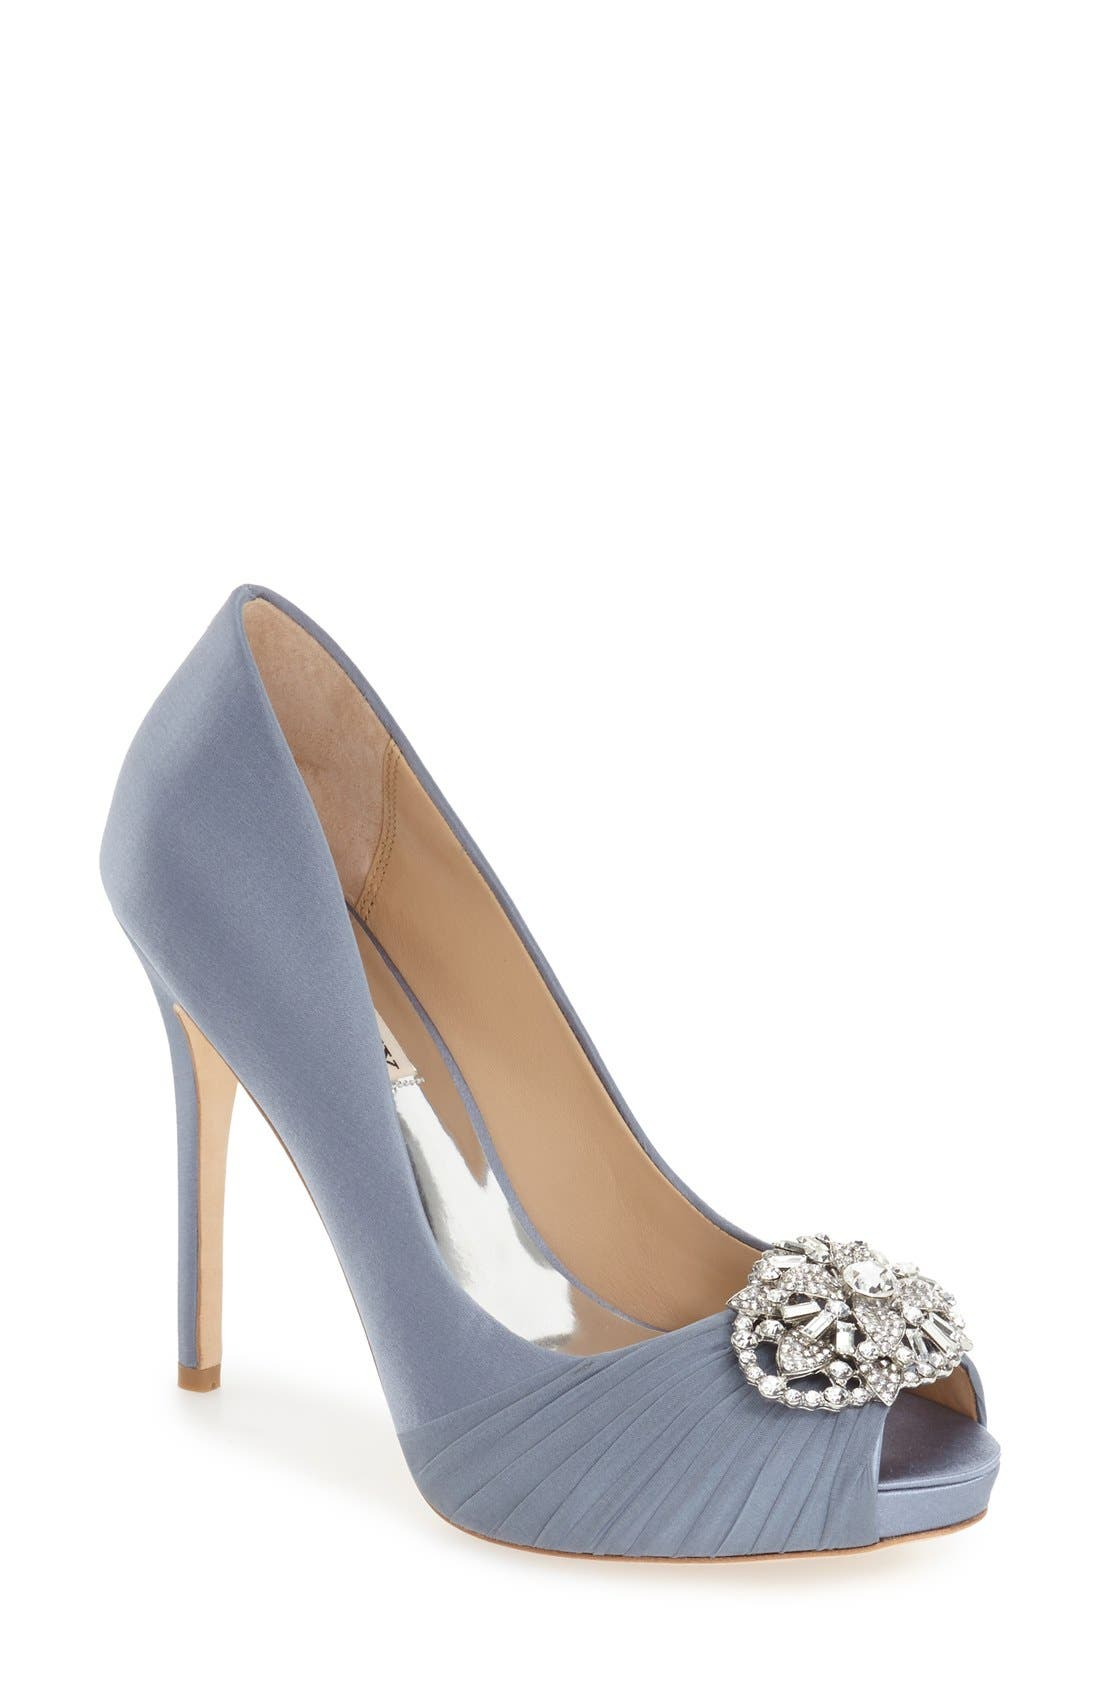 Main Image - Badgley Mischka 'Desi' Peep Toe Platform Pump (Women)